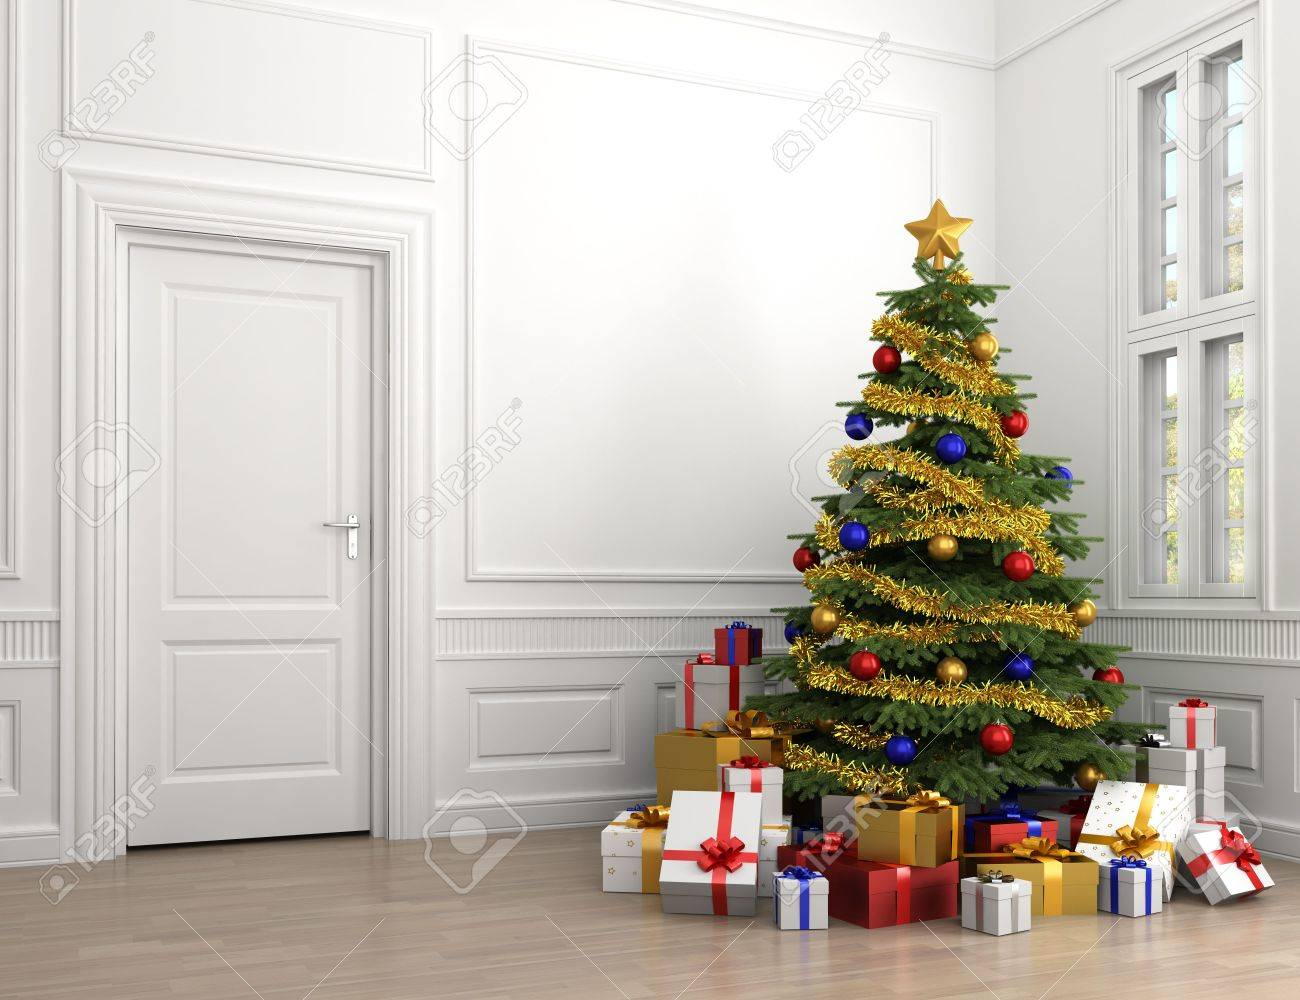 Decorated Christmas Tree With Lots Of Presents In An Empty White ...